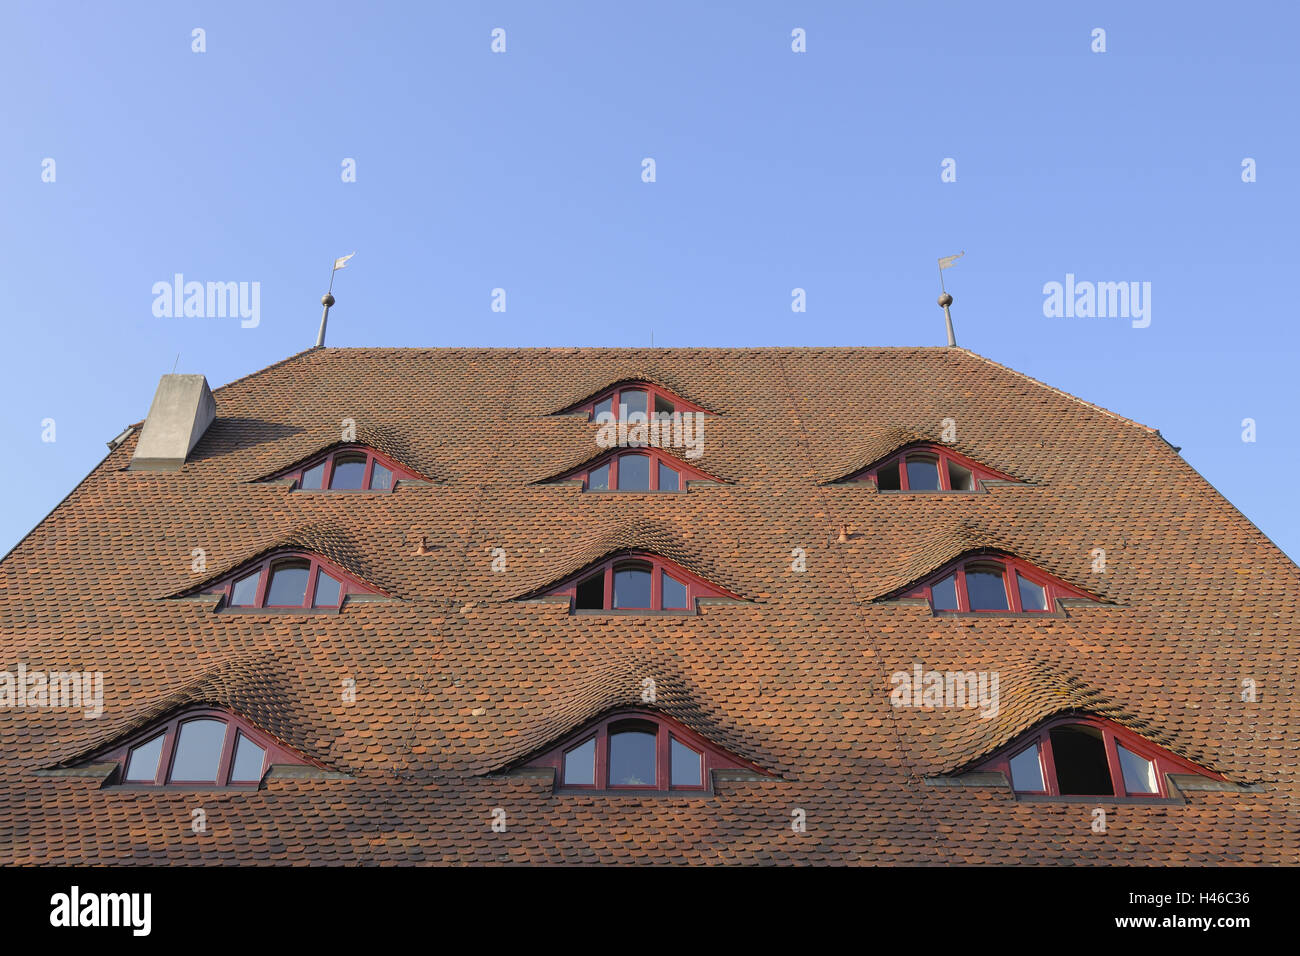 Roof Dormers Stock Photos Roof Dormers Stock Images Alamy